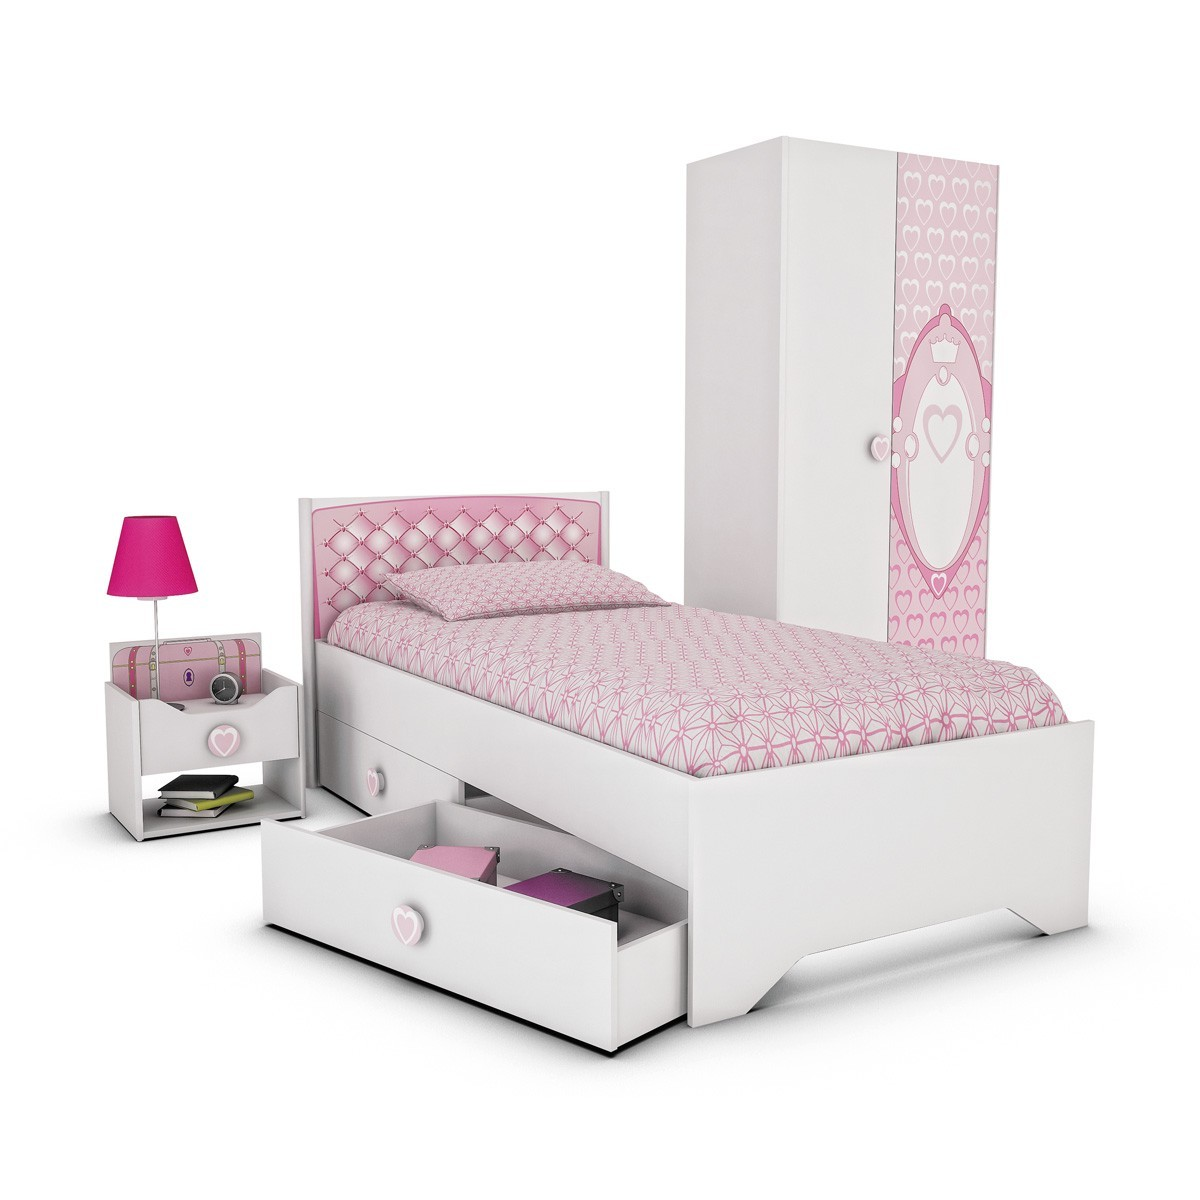 jugendbett m dchenbett bett prinzessin 90x190cm in wei pink ebay. Black Bedroom Furniture Sets. Home Design Ideas